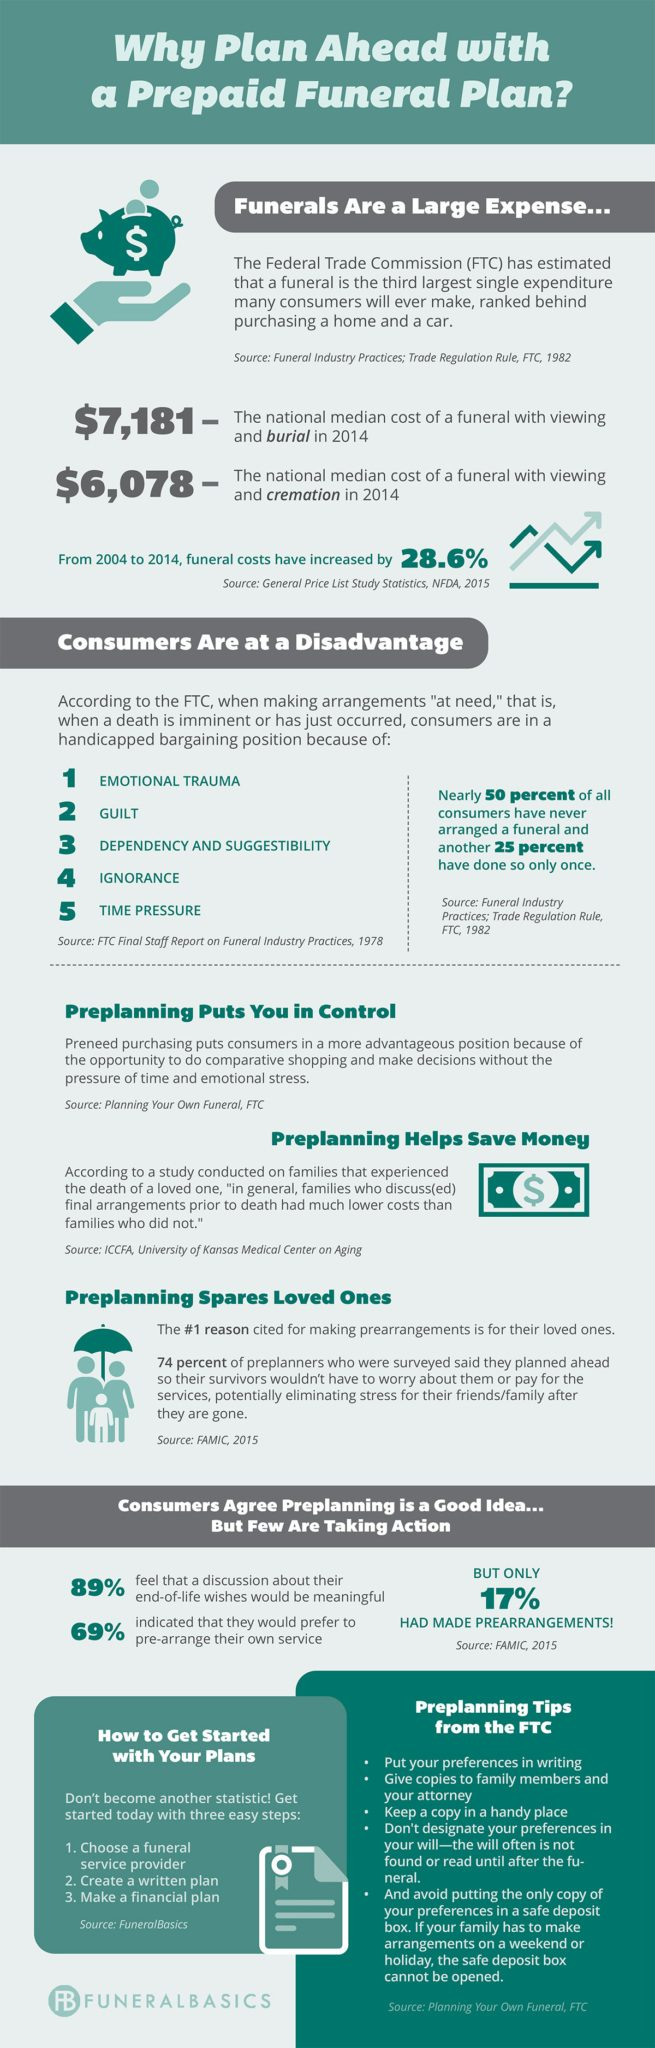 Why Plan Ahead Infographic